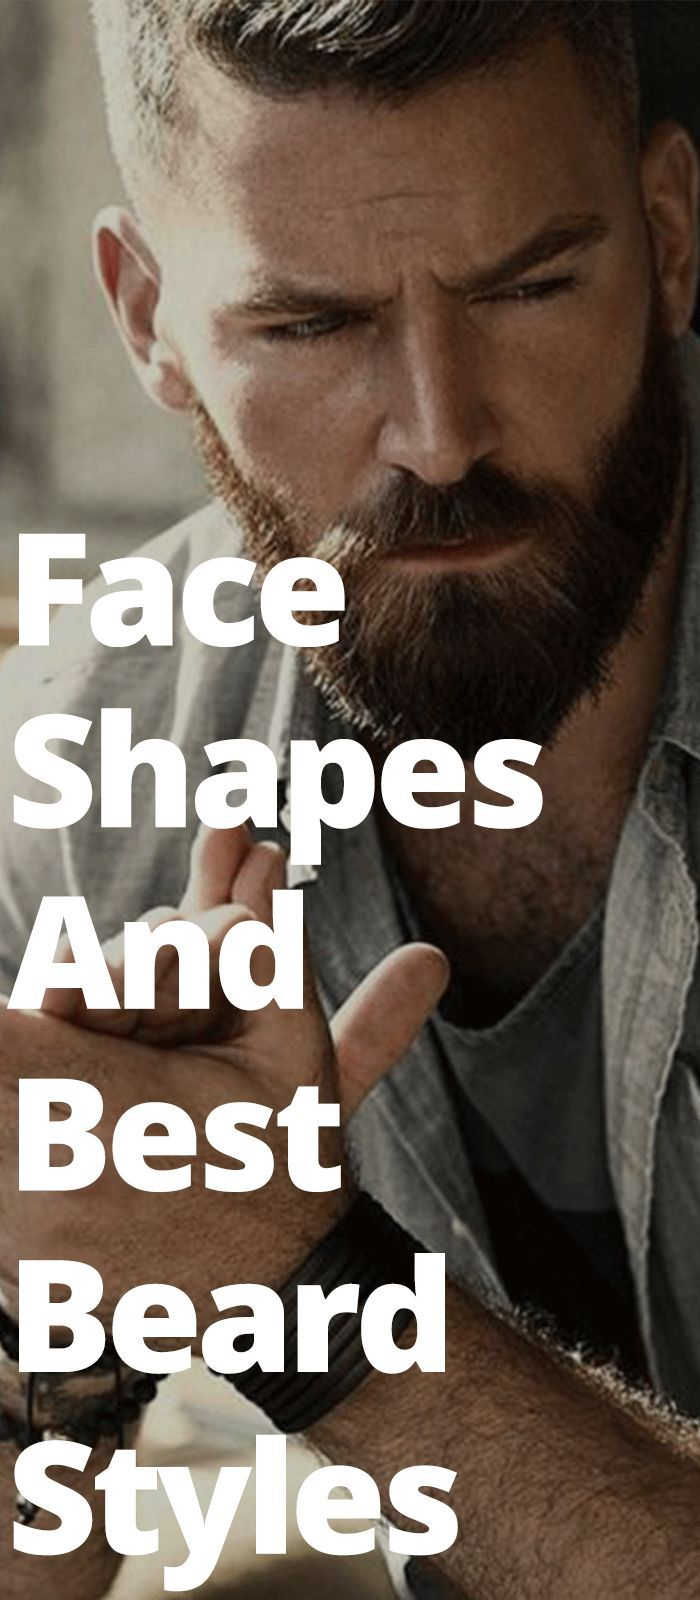 Beard Style as per your Face Shape - What style should you opt for? #hairandbeardstyles